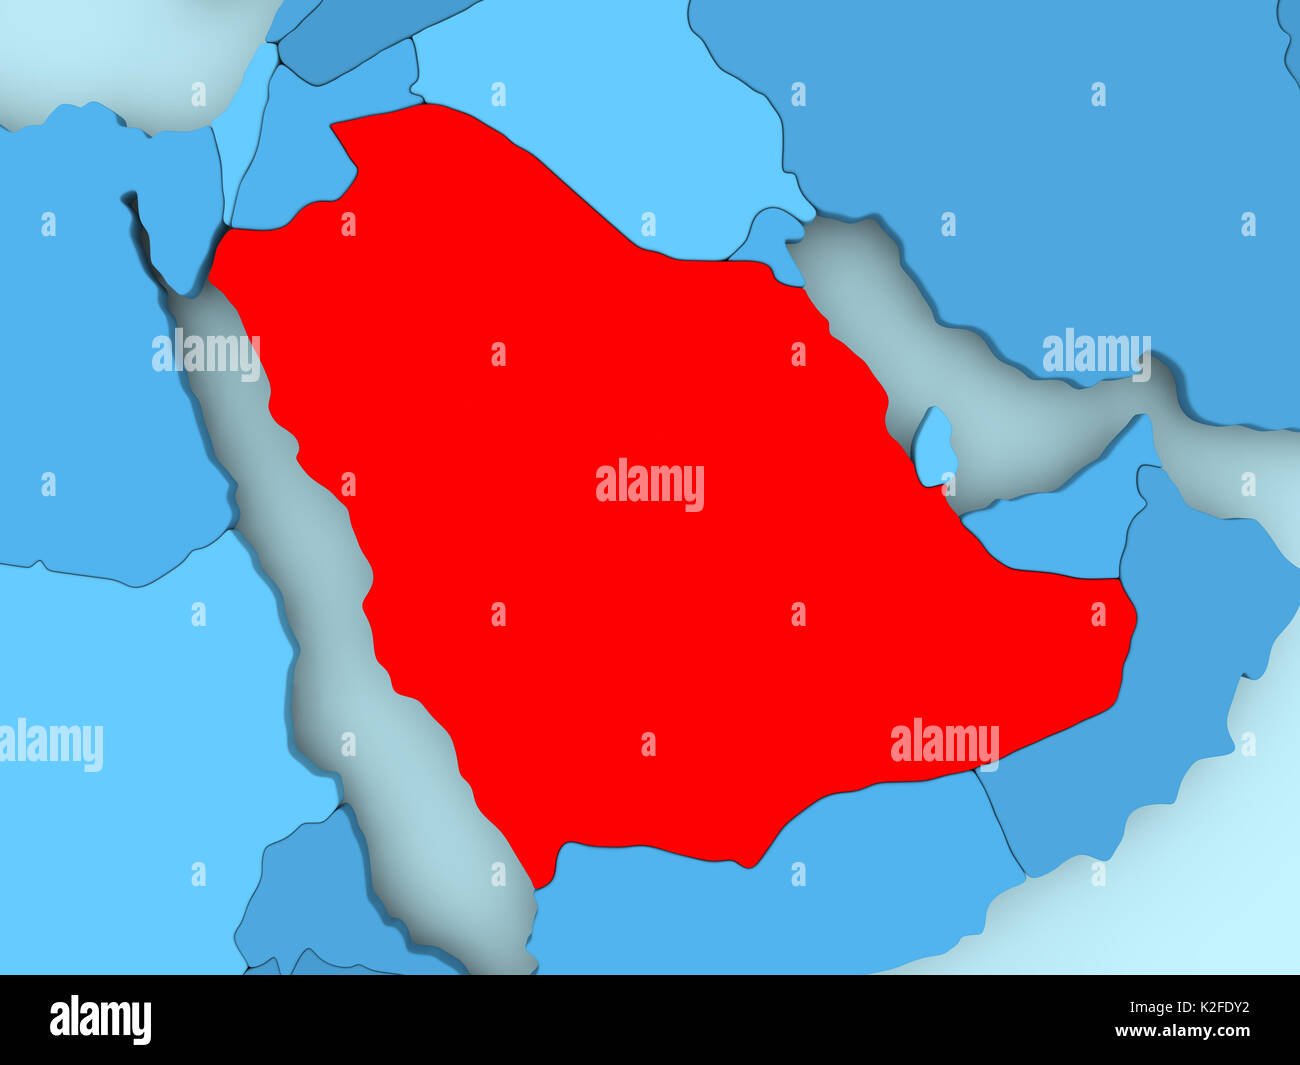 Saudi arabia in red on blue political map 3d illustration stock saudi arabia in red on blue political map 3d illustration gumiabroncs Images